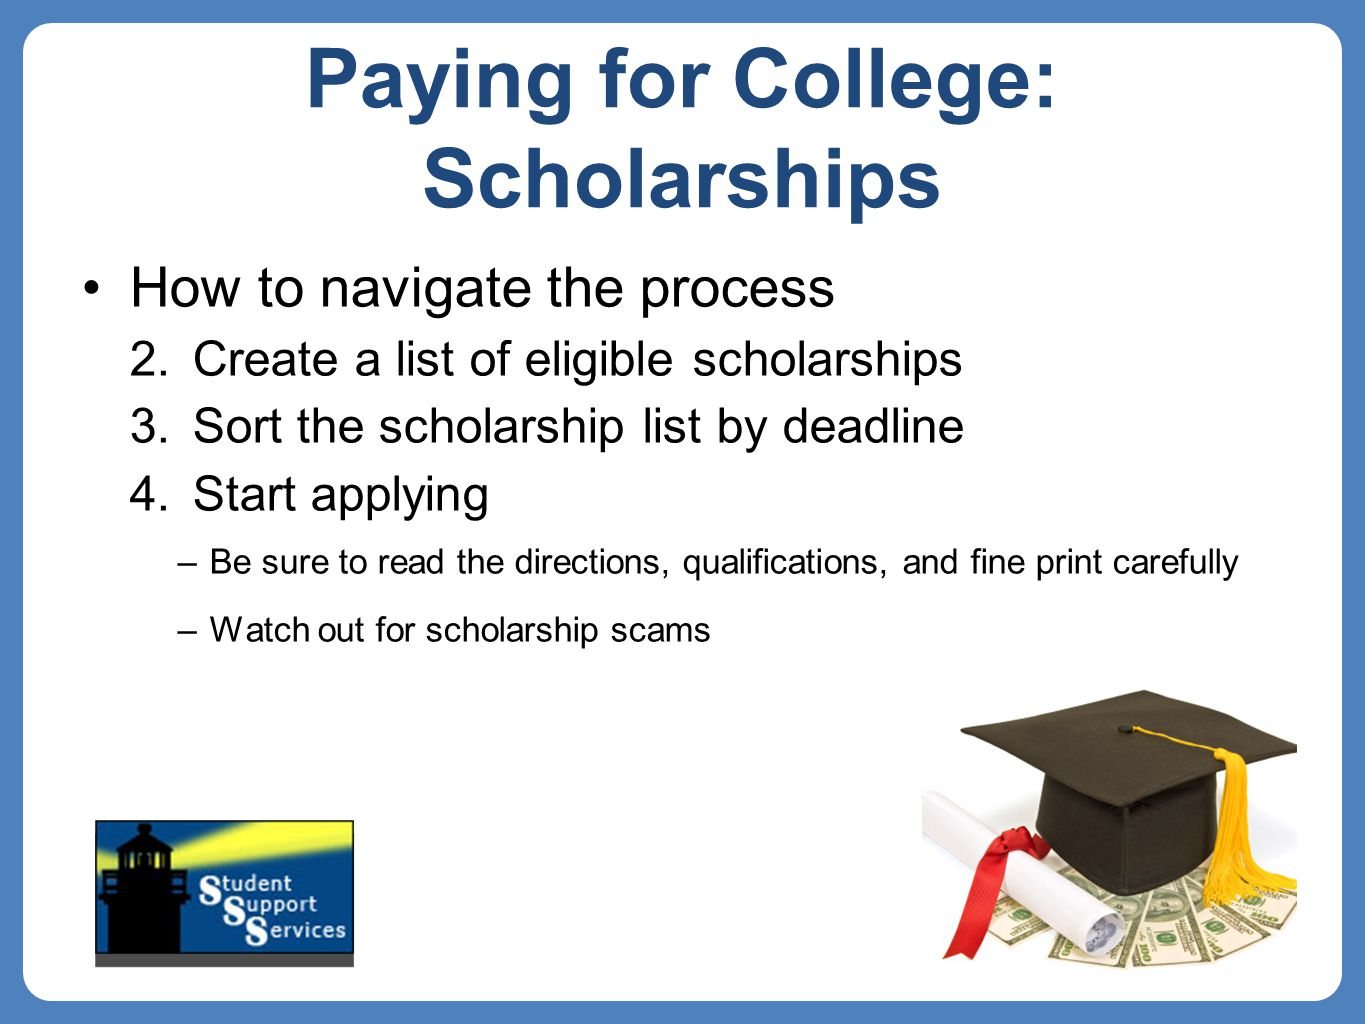 Paying for College: Scholarships How to navigate the process 2.Create a list of eligible scholarships 3.Sort the scholarship list by deadline 4.Start applying –Be sure to read the directions, qualifications, and fine print carefully –Watch out for scholarship scams